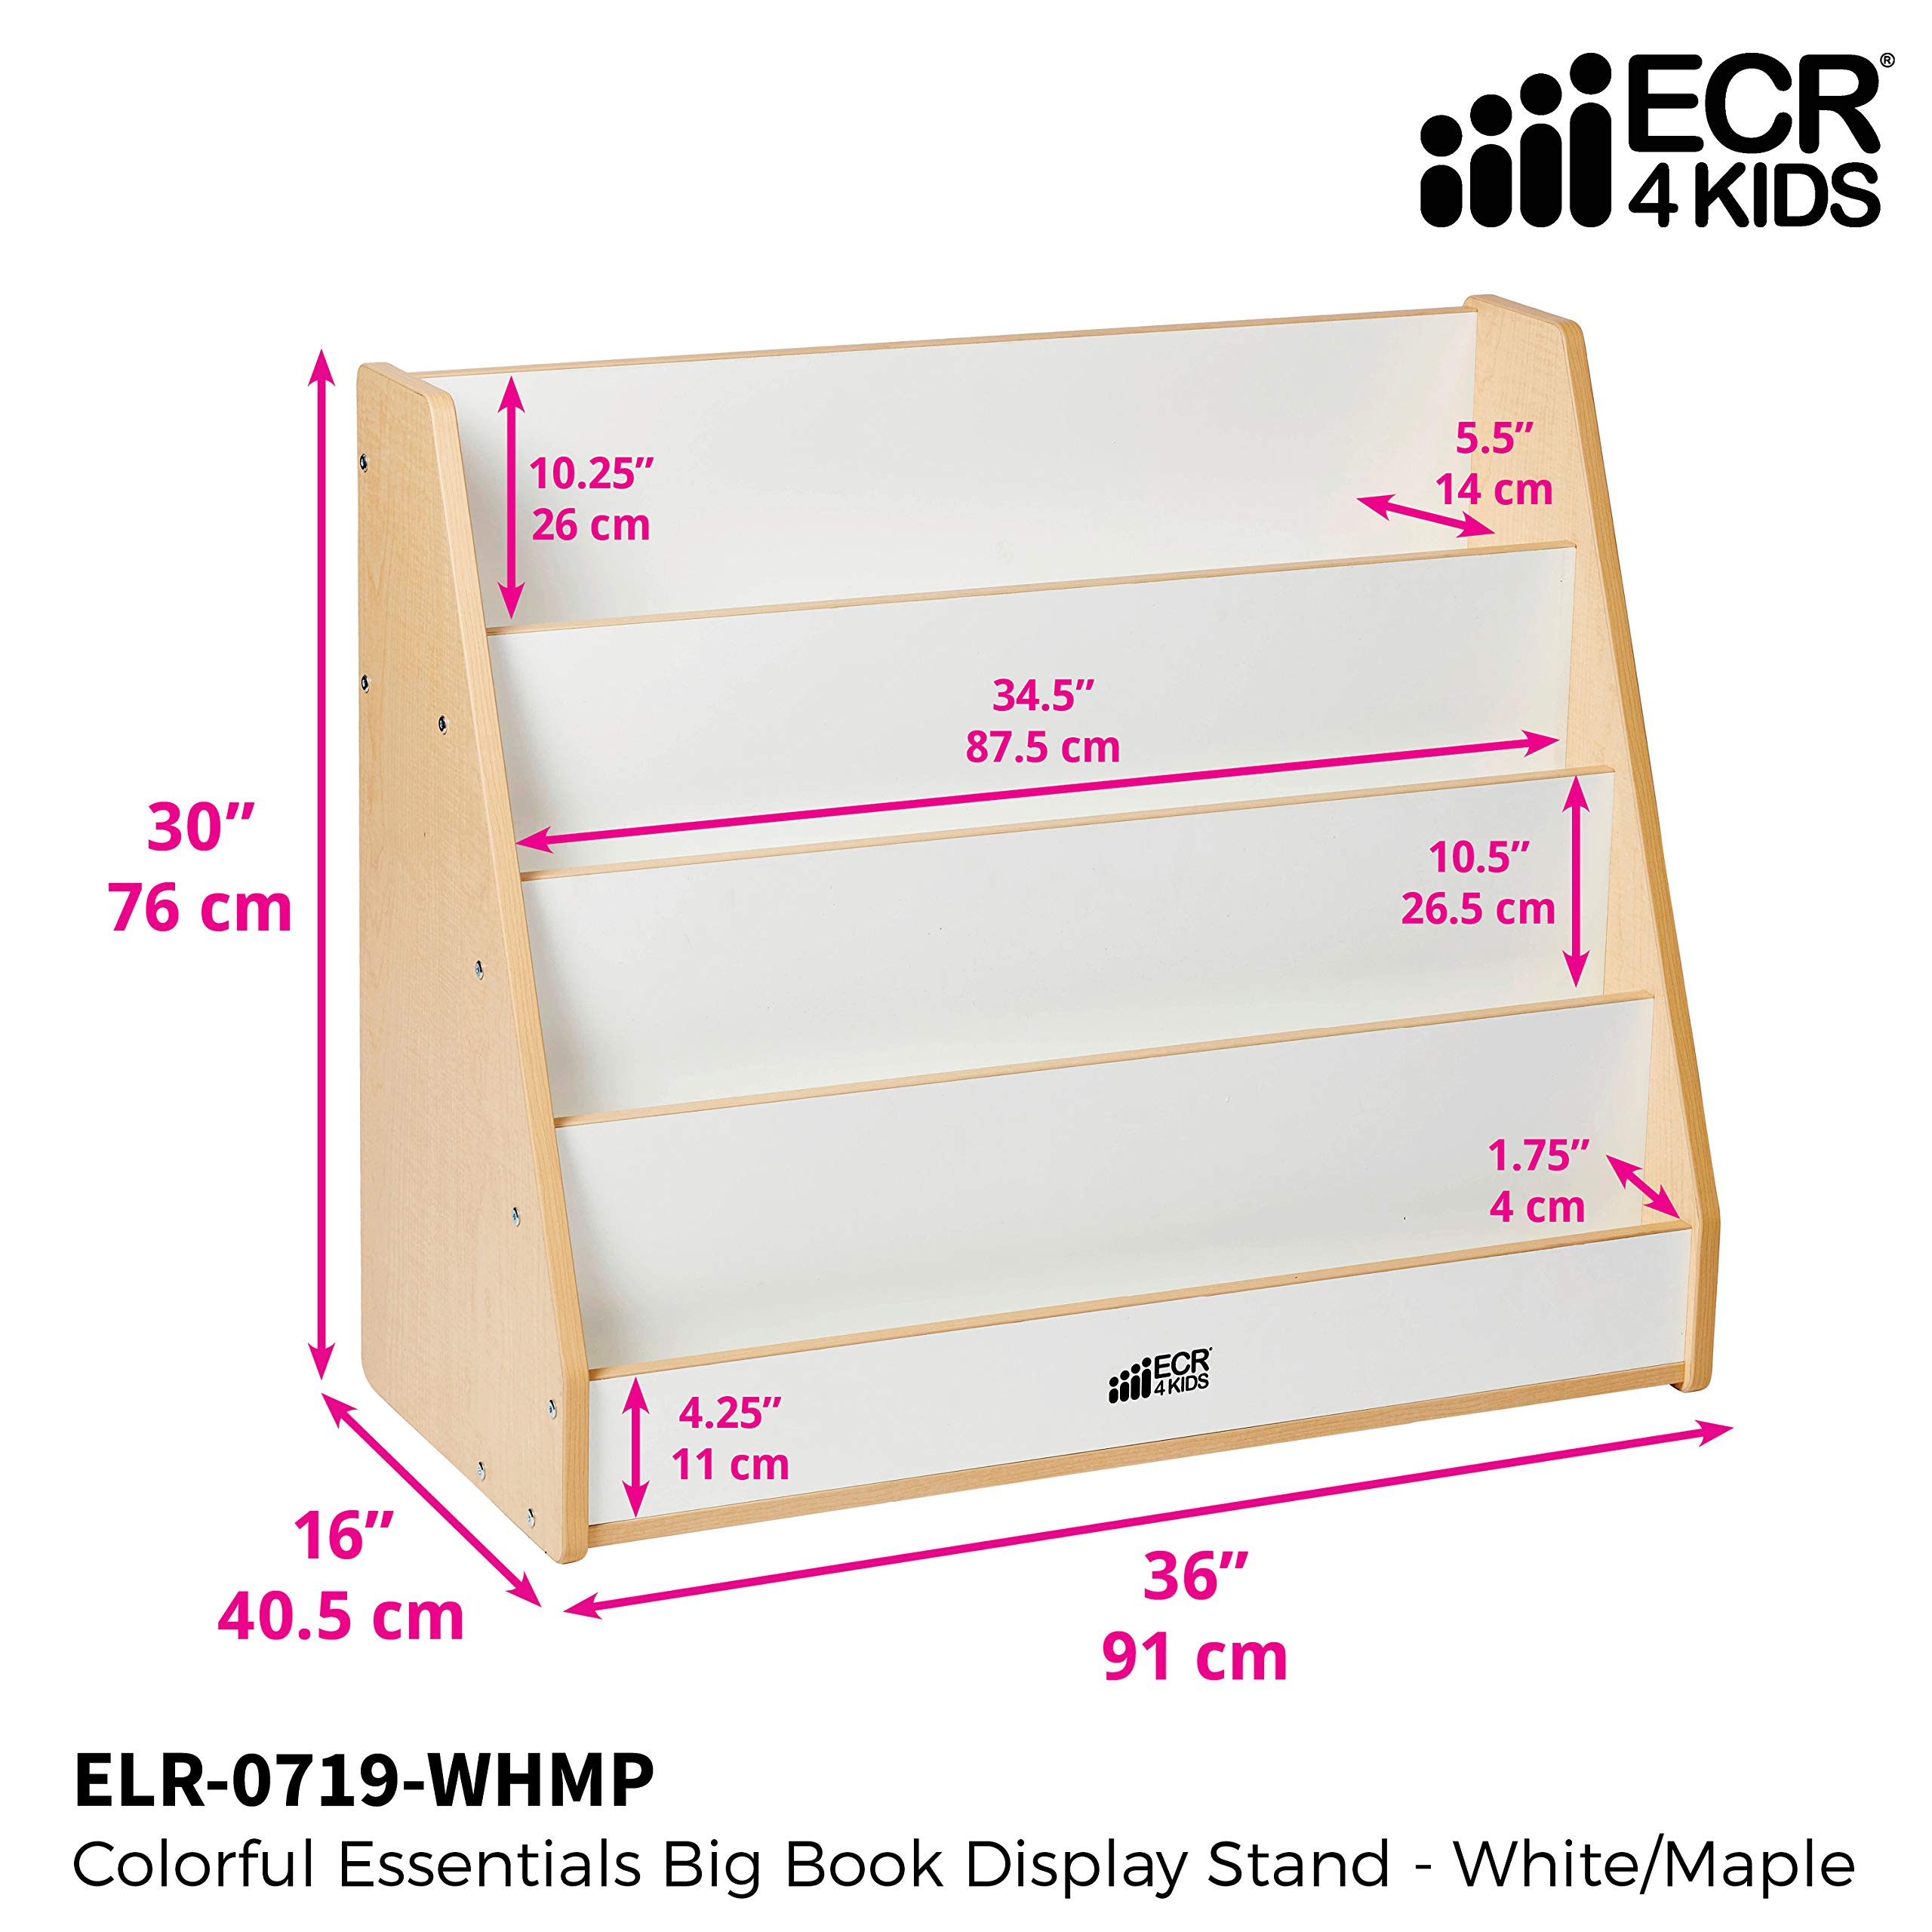 ECR4Kids Colorful Essentials 4-Tier Book Display Stand, White and Maple by ECR4Kids (Image #3)